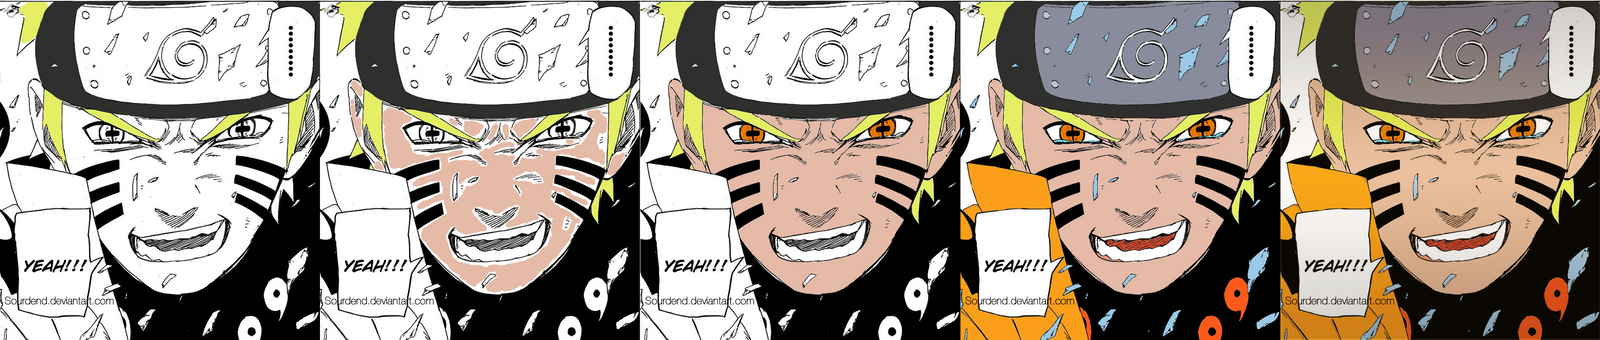 Naruto Manga 687 - Timeline Coloring by Sourdend